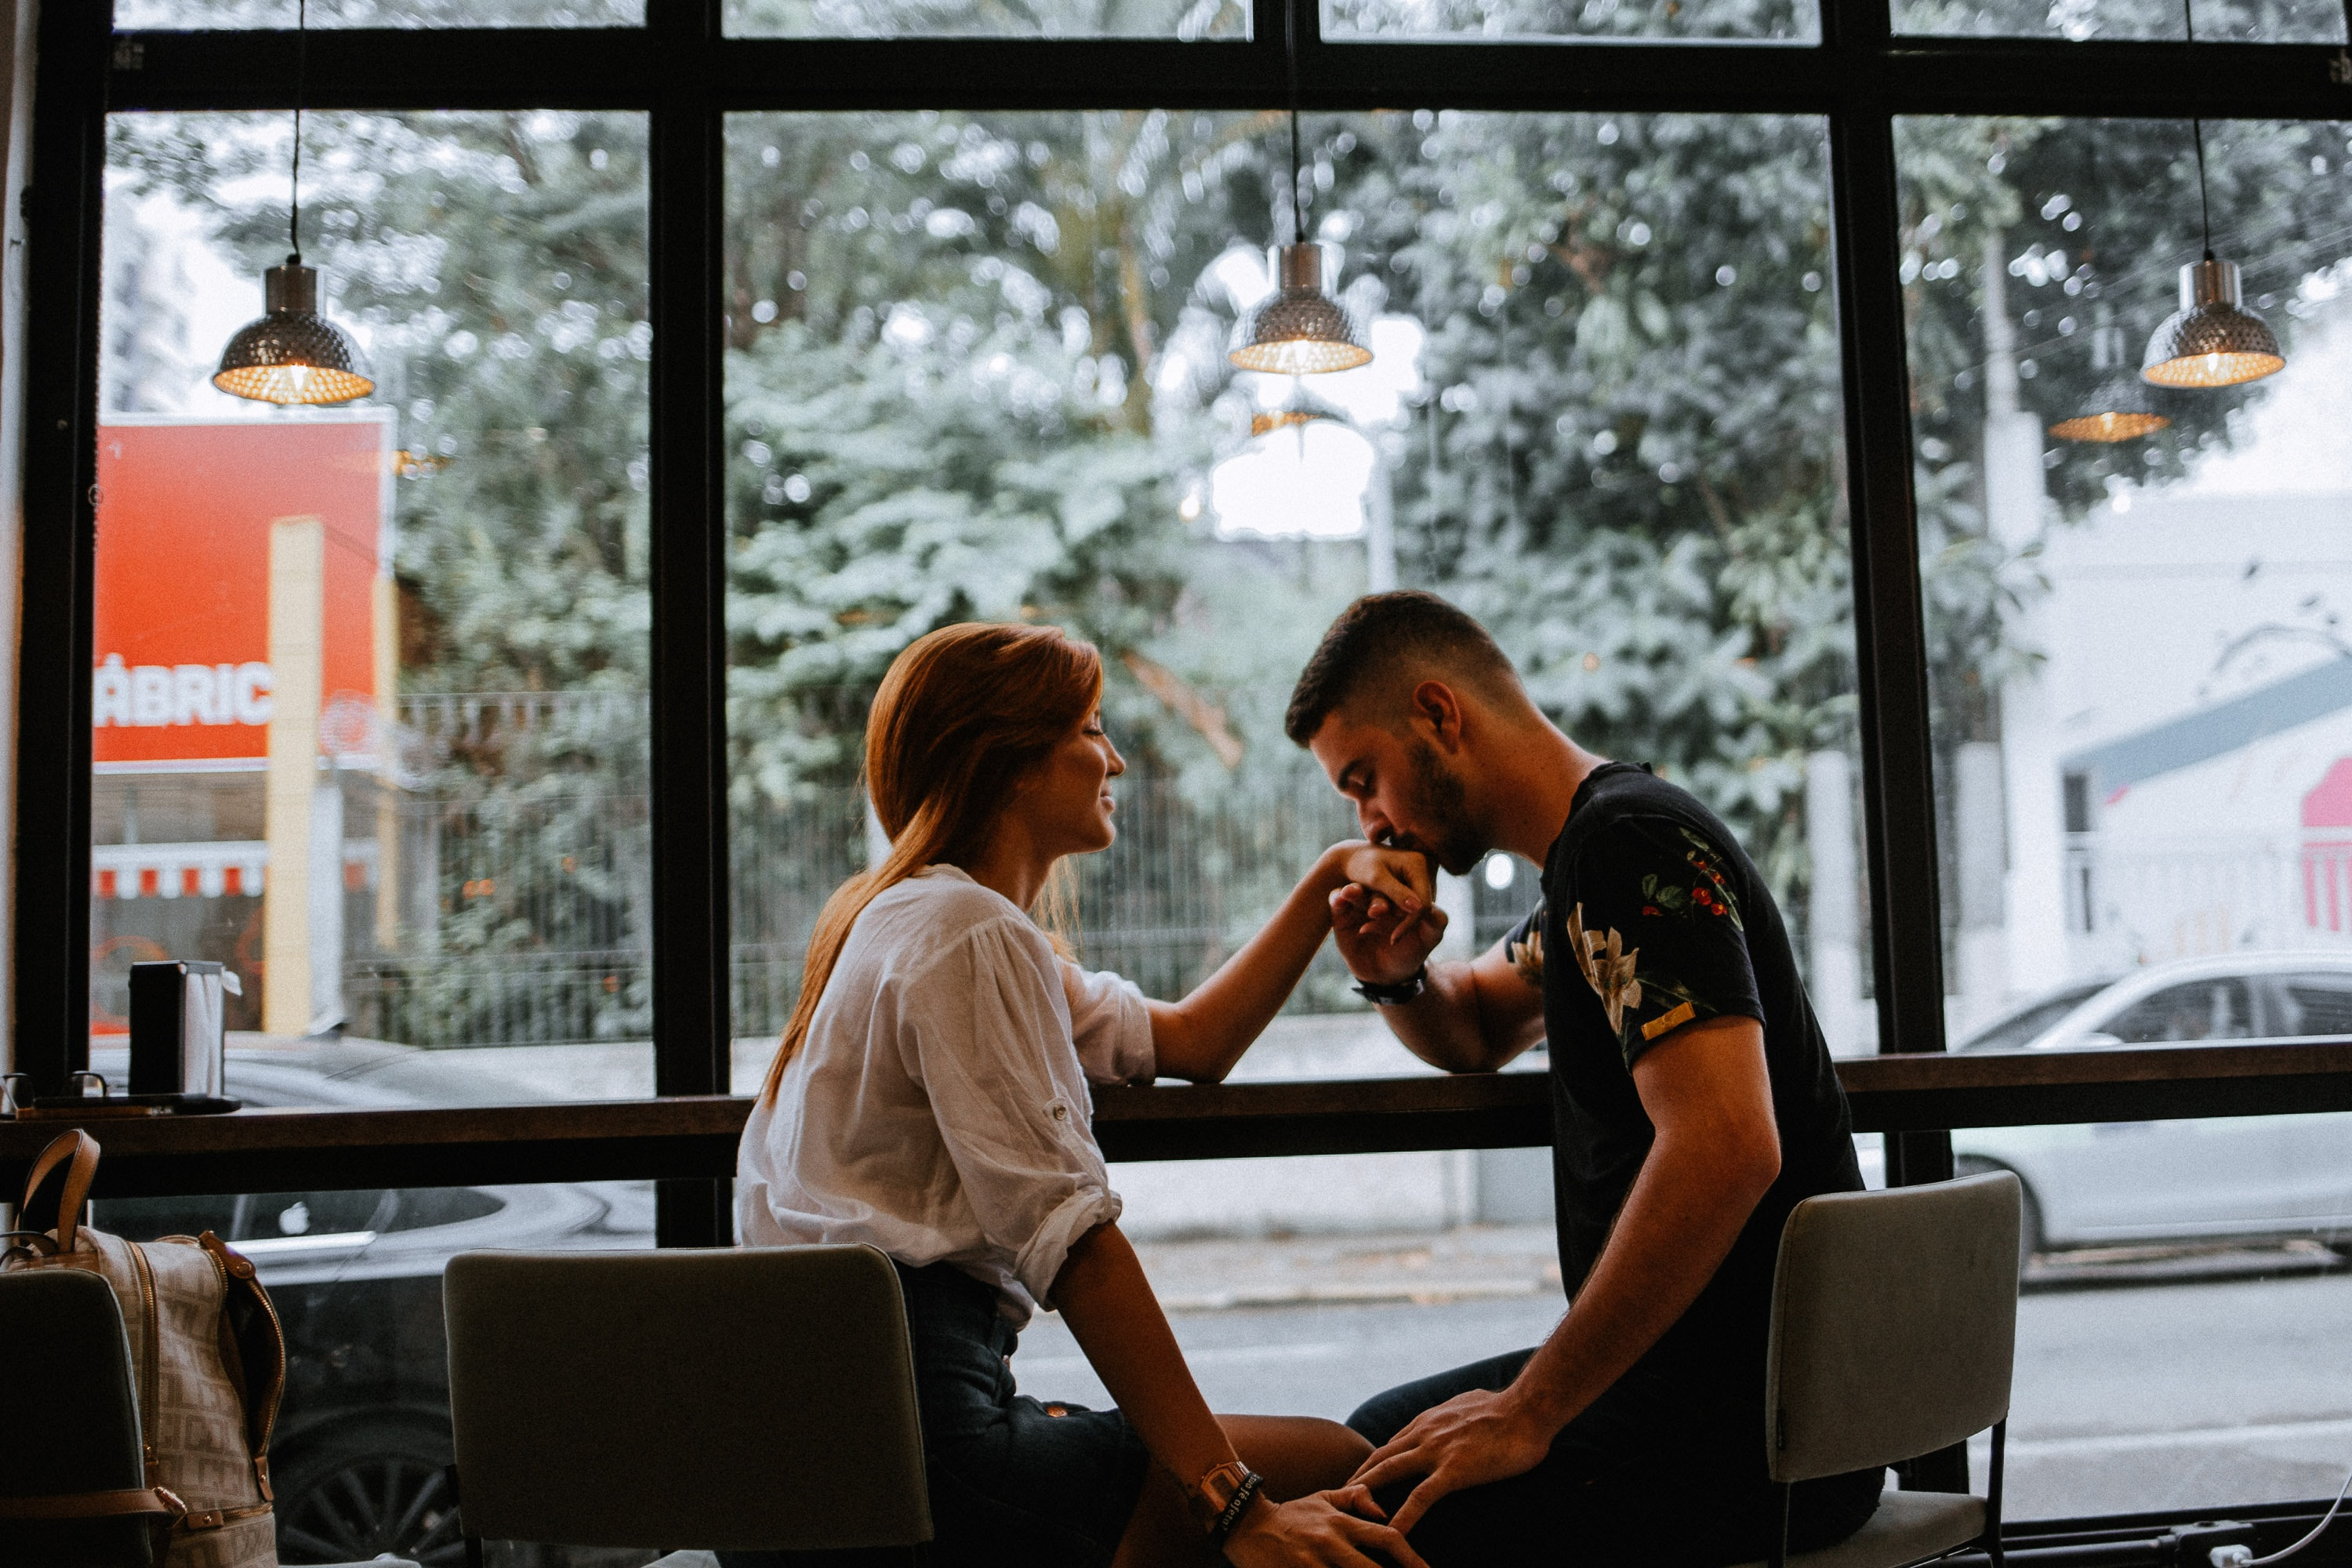 selective focus photography of man and woman sitting on dining set with man kissing hand of woman